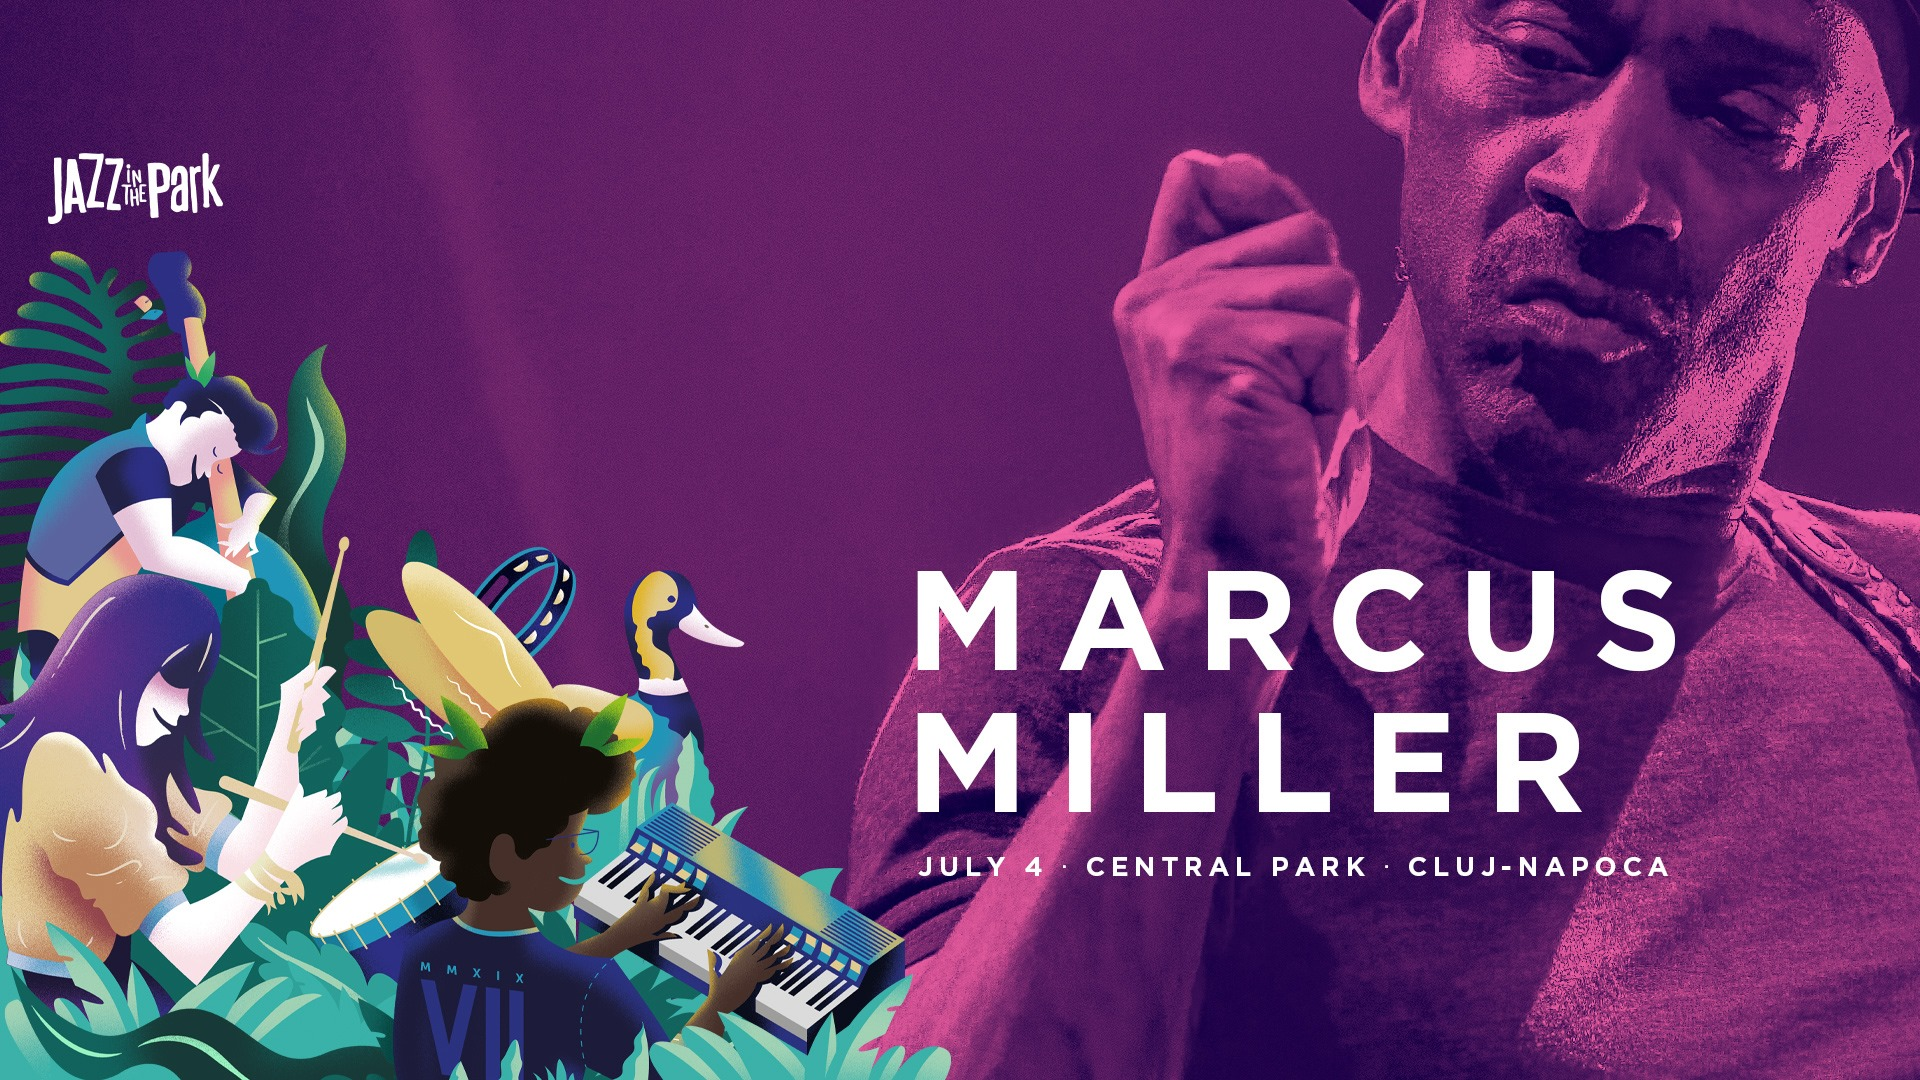 marcus miller la jazz in the park